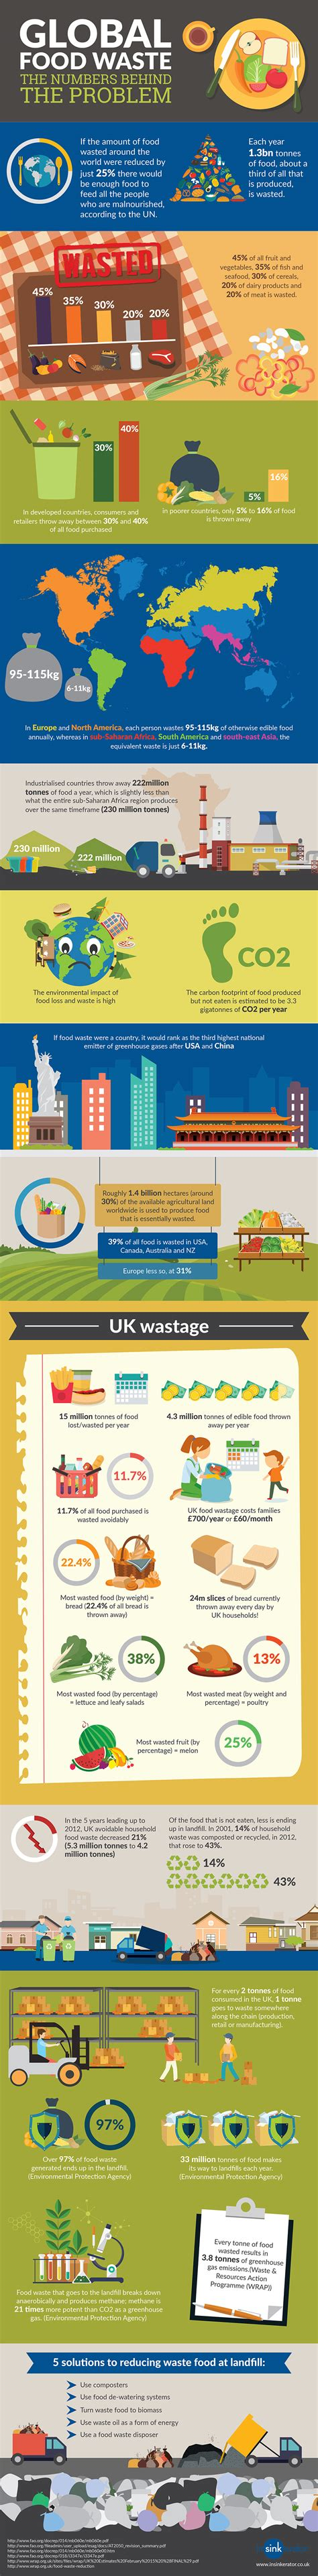 Why We Should All Combat Global Food Waste